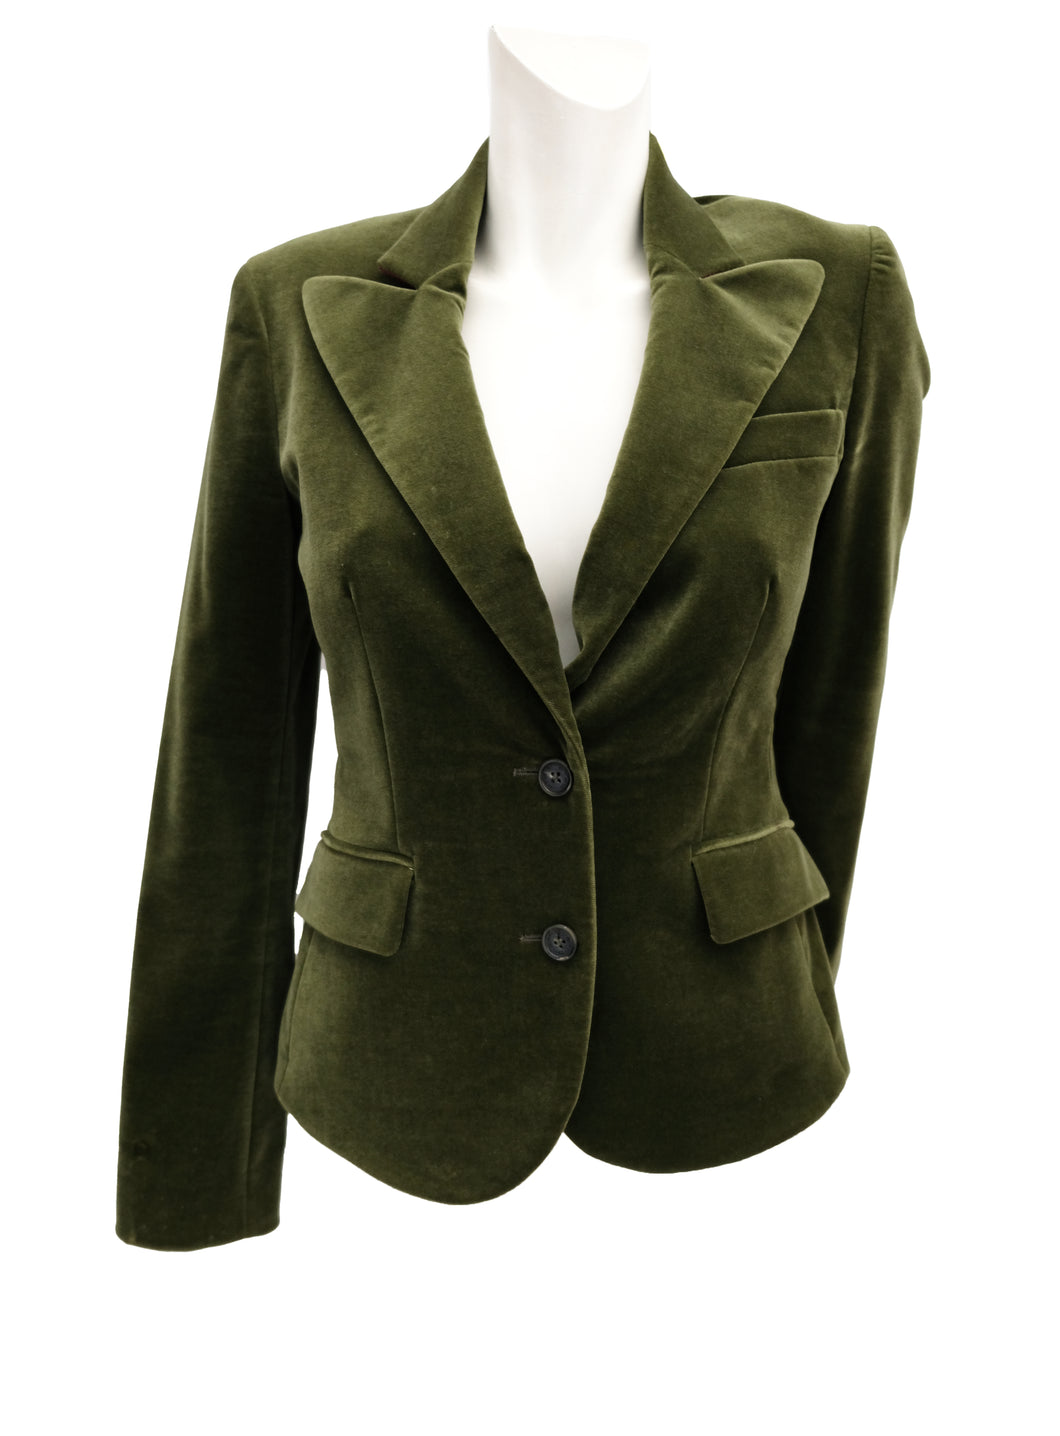 Etro Blazer in Green Velvet, UK10